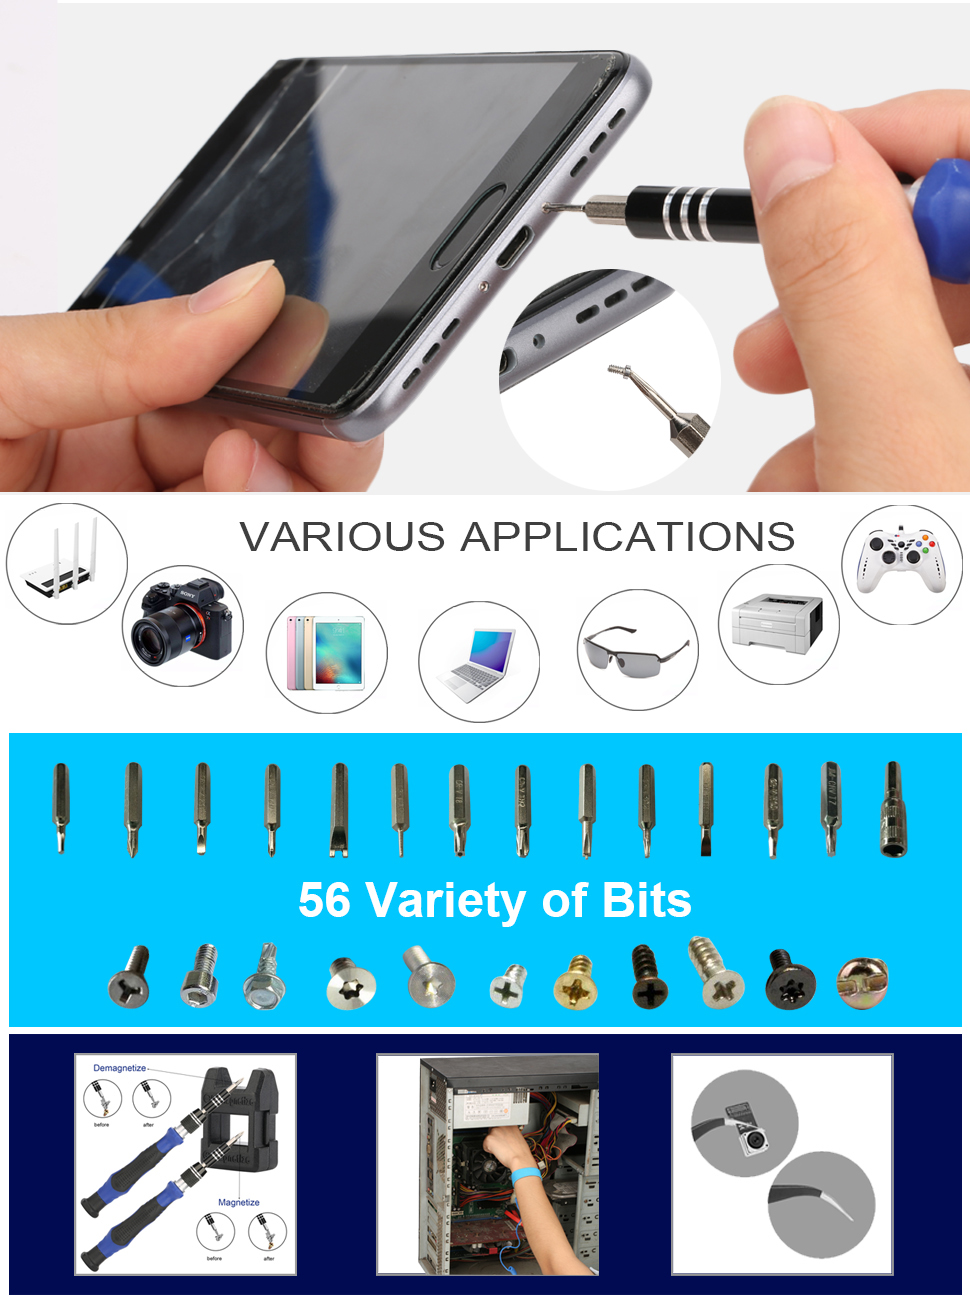 KANEED Professional Electronics Repair Tool Kit 60 in 1 Professional Screwdriver Repair Open Tool Kit with SIM Card Adapter Set for Mobile Phones